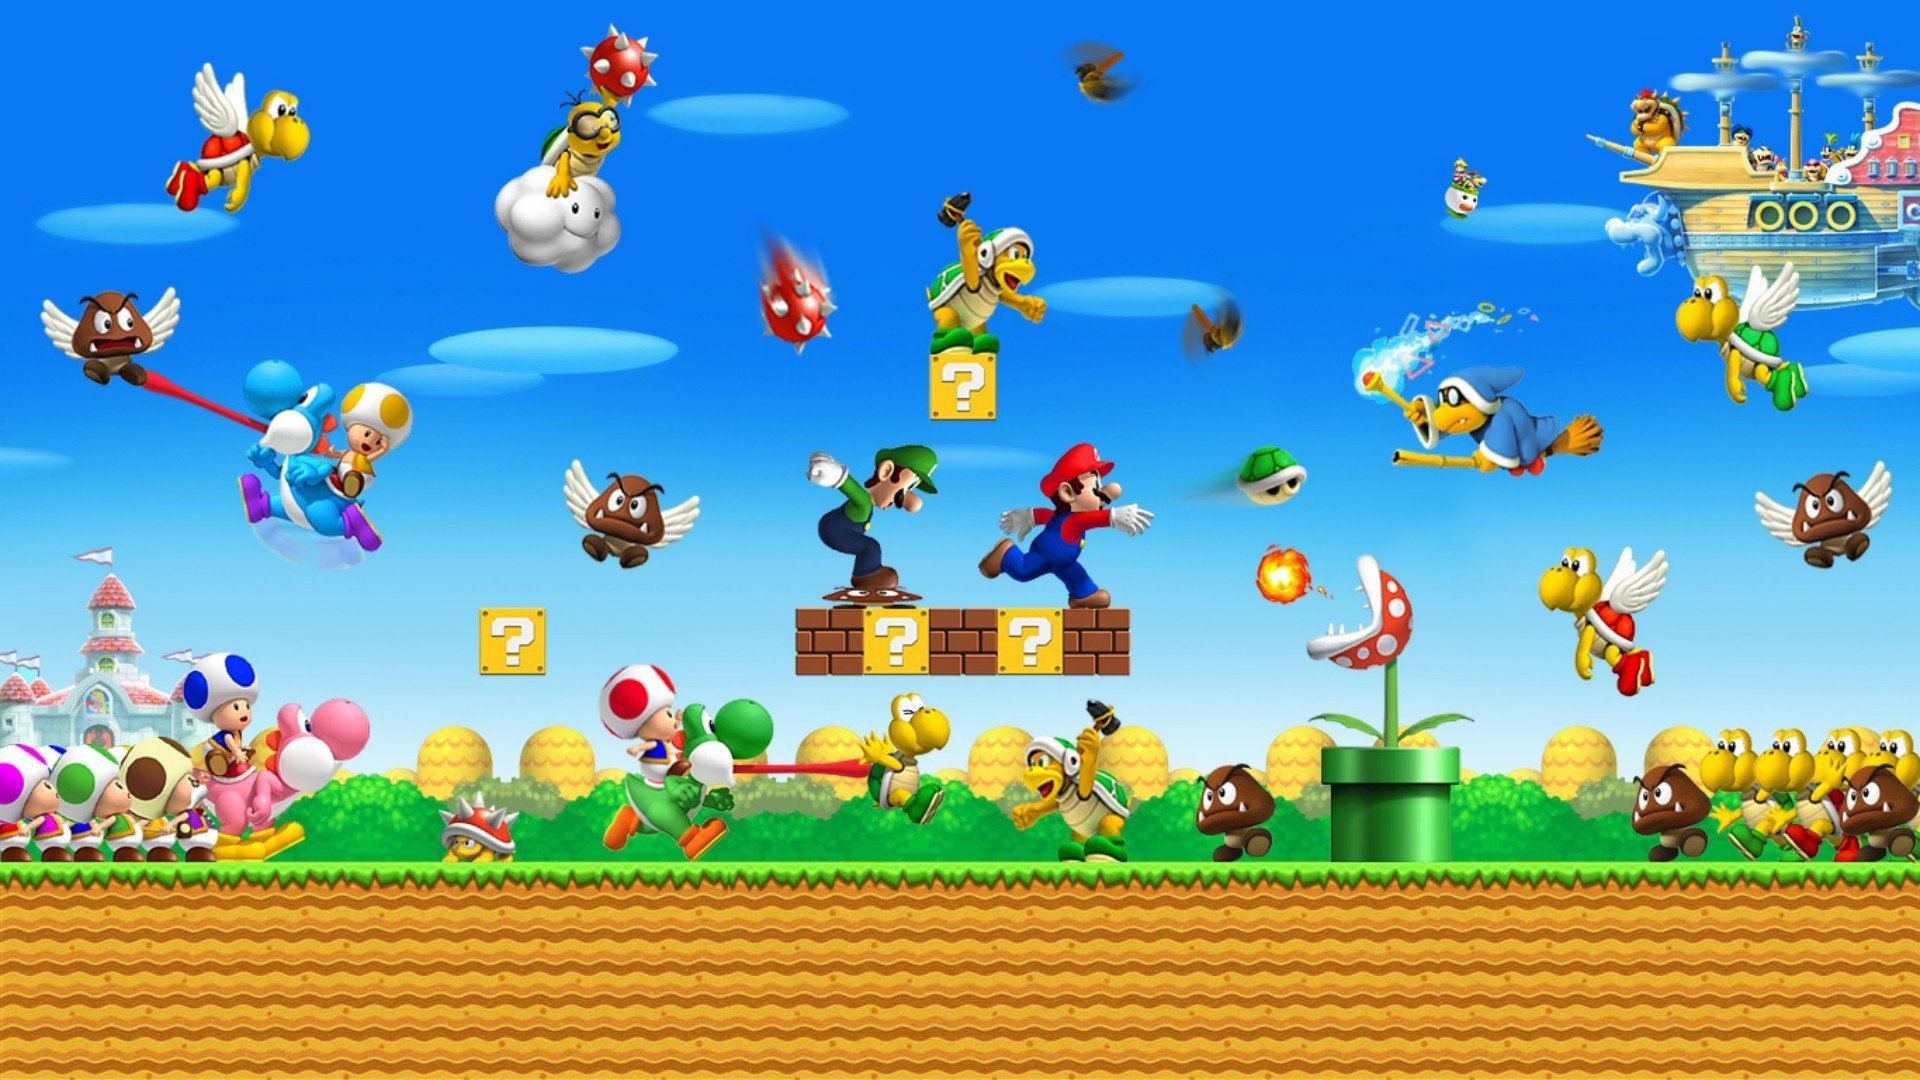 1920x1080 New Super Mario Bros 2 849942 - WallDevil